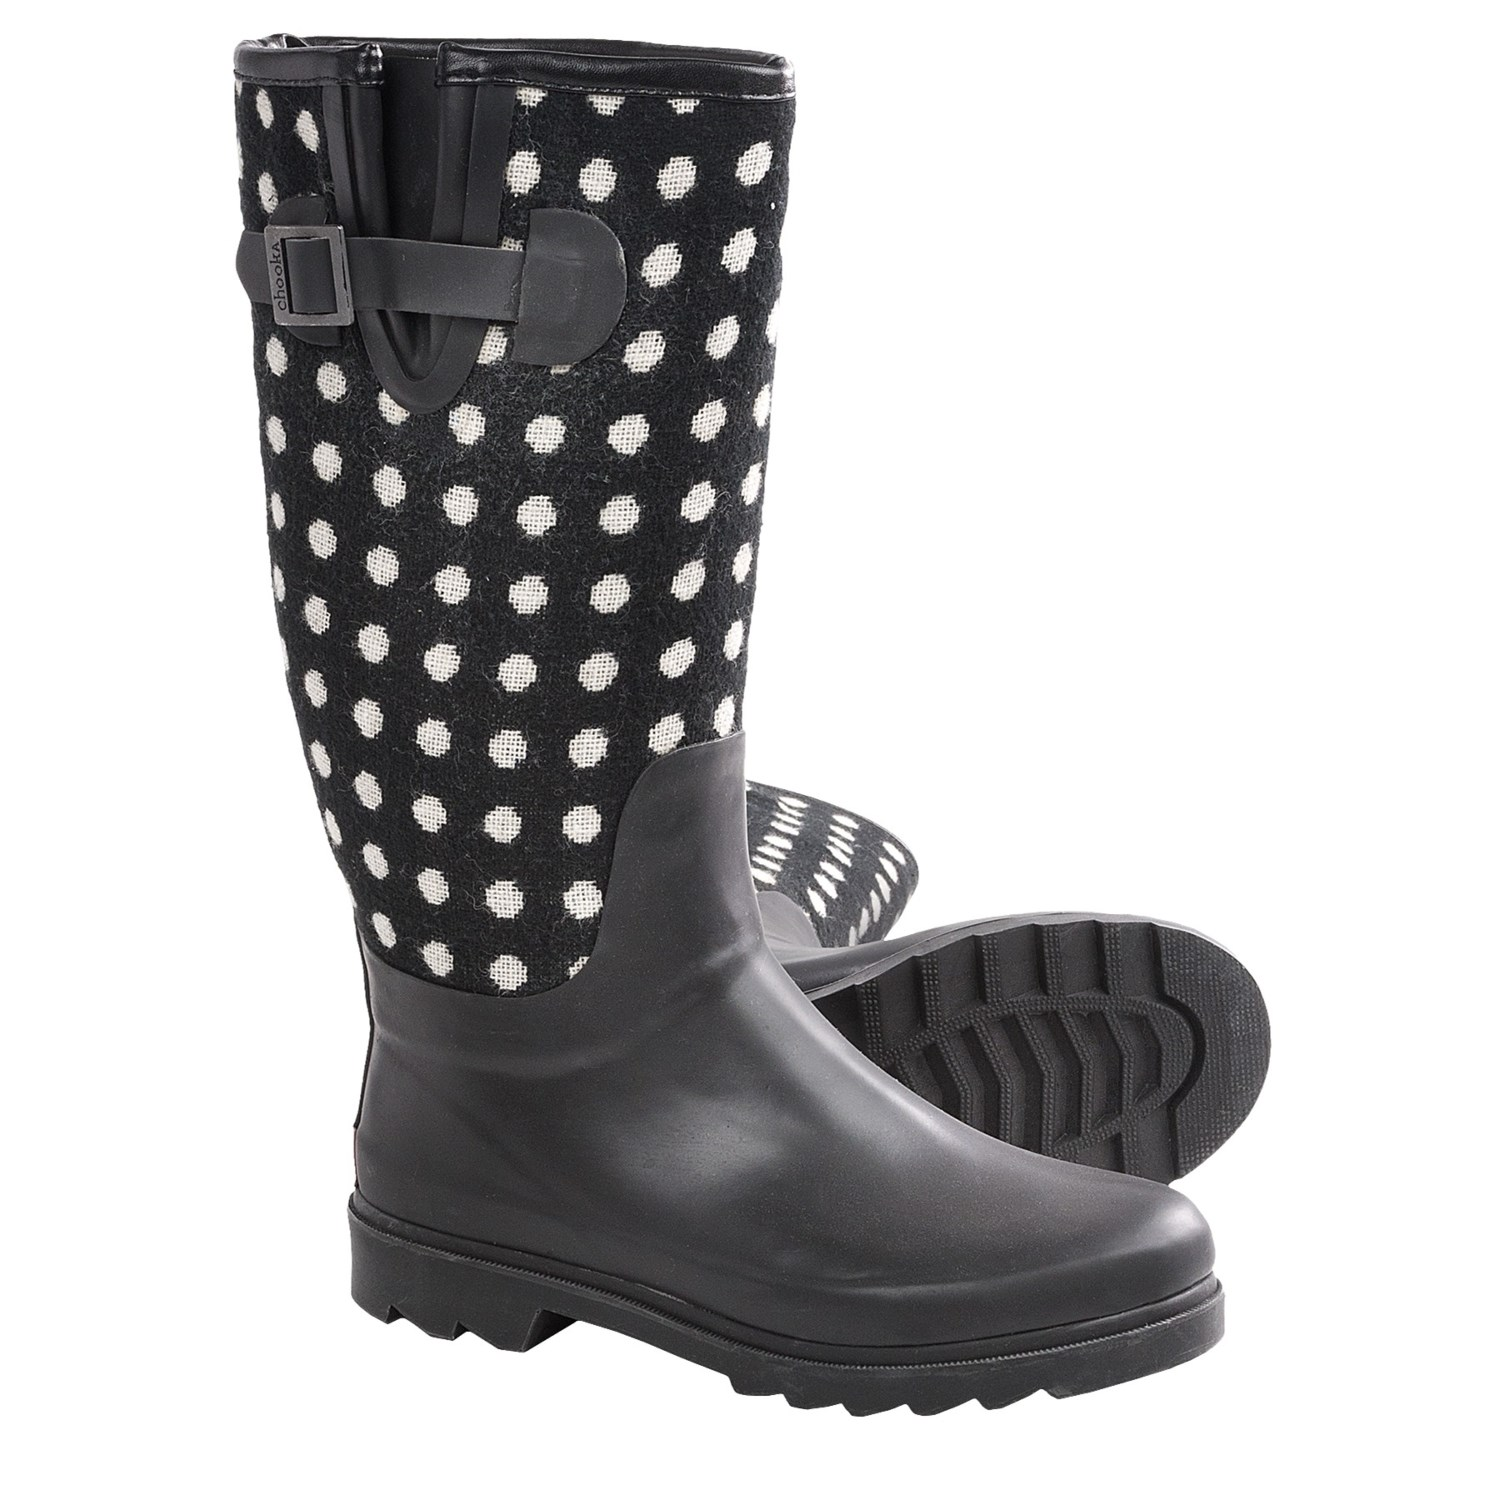 Excellent Details About Kamik Olivia Women39s Waterproof Rubber Rain Boots